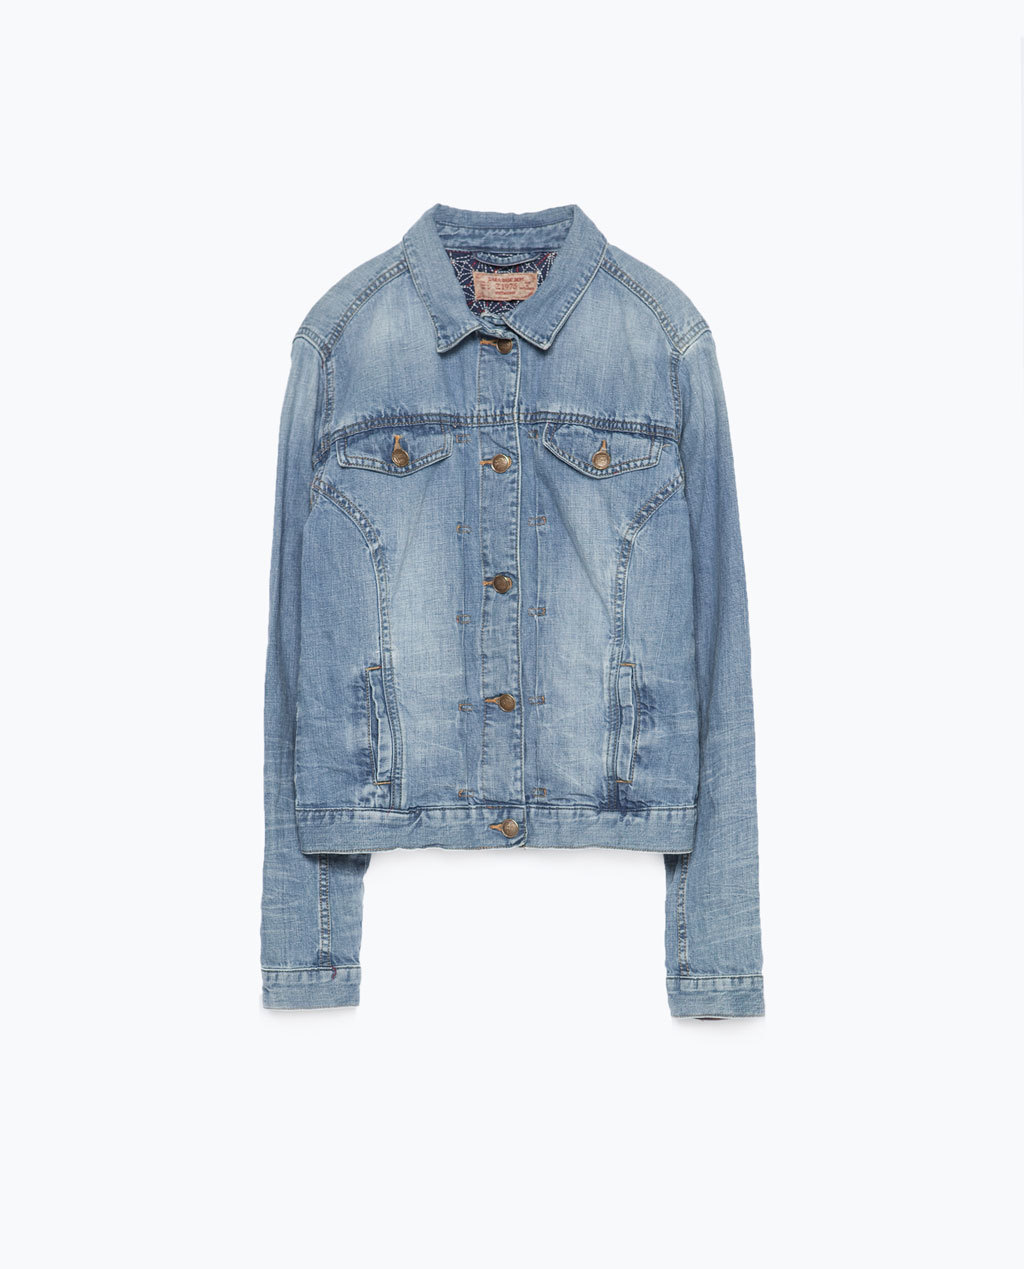 Denim Jacket - pattern: plain; style: denim; predominant colour: denim; occasions: casual; length: standard; fit: straight cut (boxy); fibres: cotton - stretch; collar: shirt collar/peter pan/zip with opening; sleeve length: long sleeve; sleeve style: standard; texture group: denim; collar break: high/illusion of break when open; pattern type: fabric; season: s/s 2015; wardrobe: basic